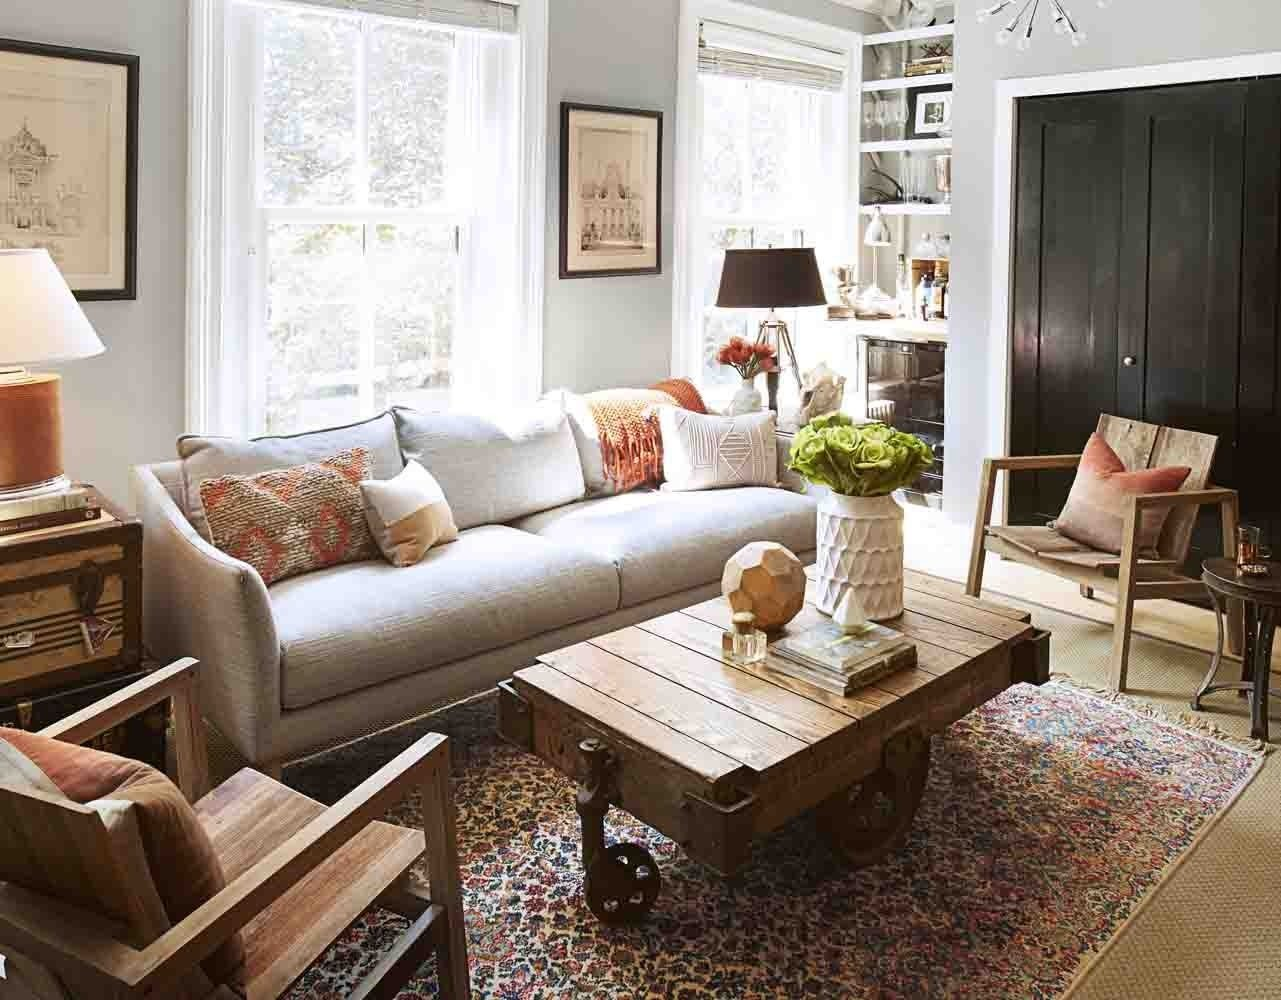 10 Lovely Living Room Decorating Ideas Pictures 51 best living room ideas stylish living room decorating designs 31